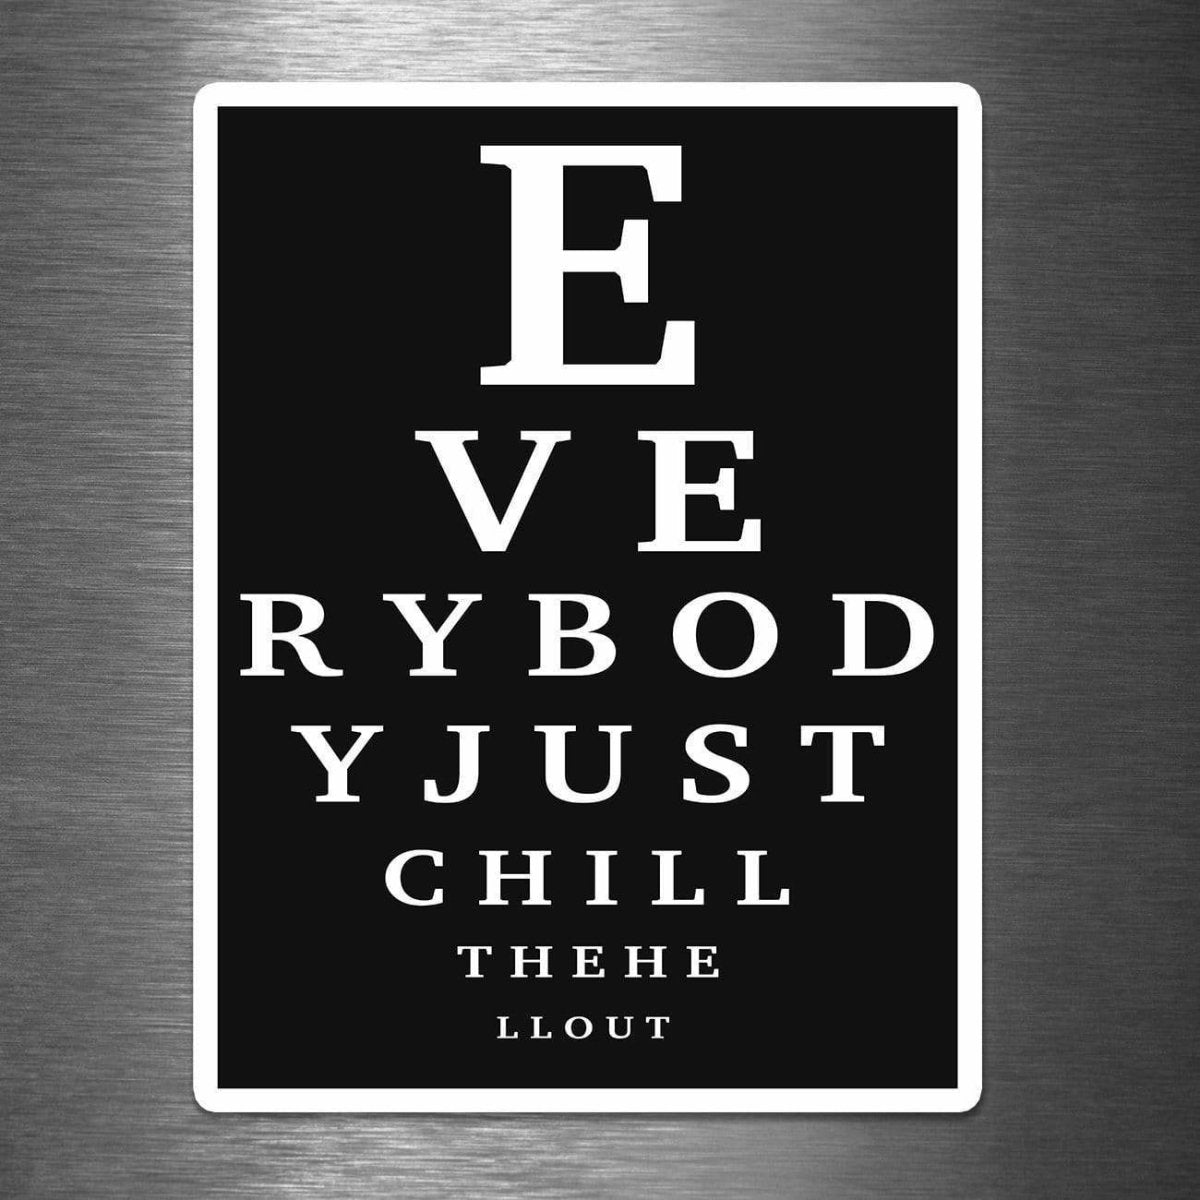 Eye Chart Everybody Just Chill the Hell Out - Vinyl Sticker - Dan Pearce Sticker Shop